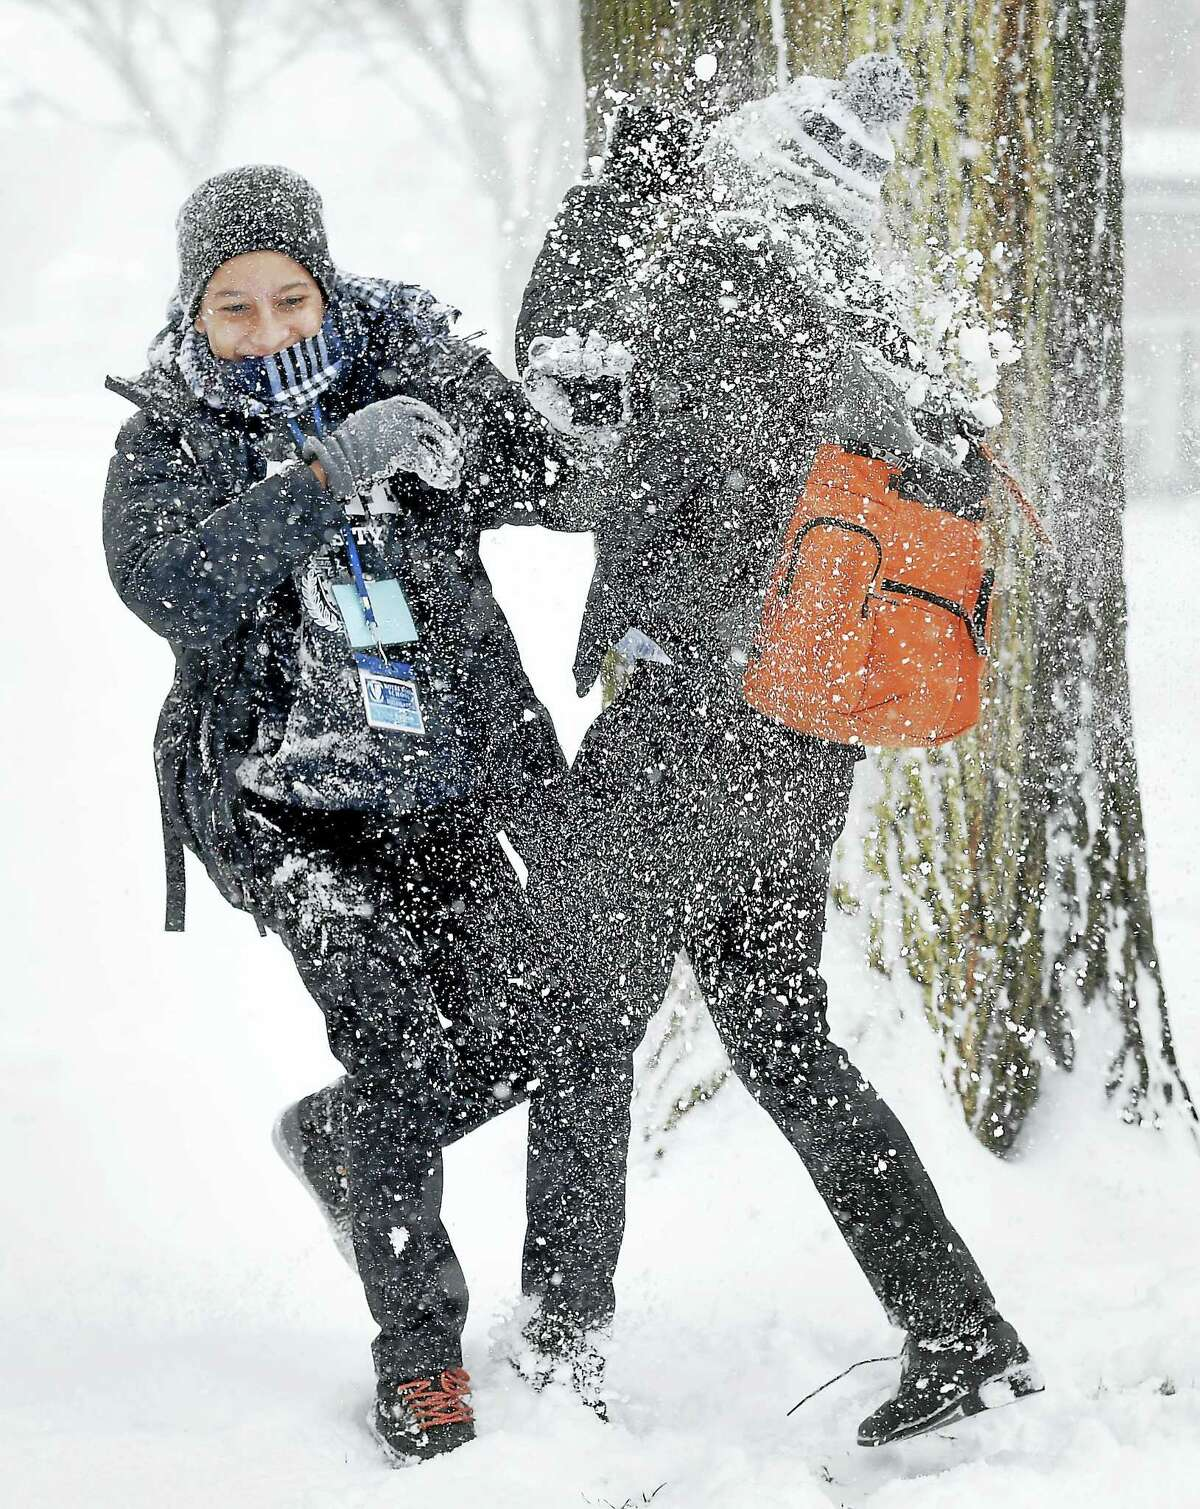 Victor Batista, left, and Joan Gomez have a snowball fight on Yale University's Cross Campus in New Haven in January.